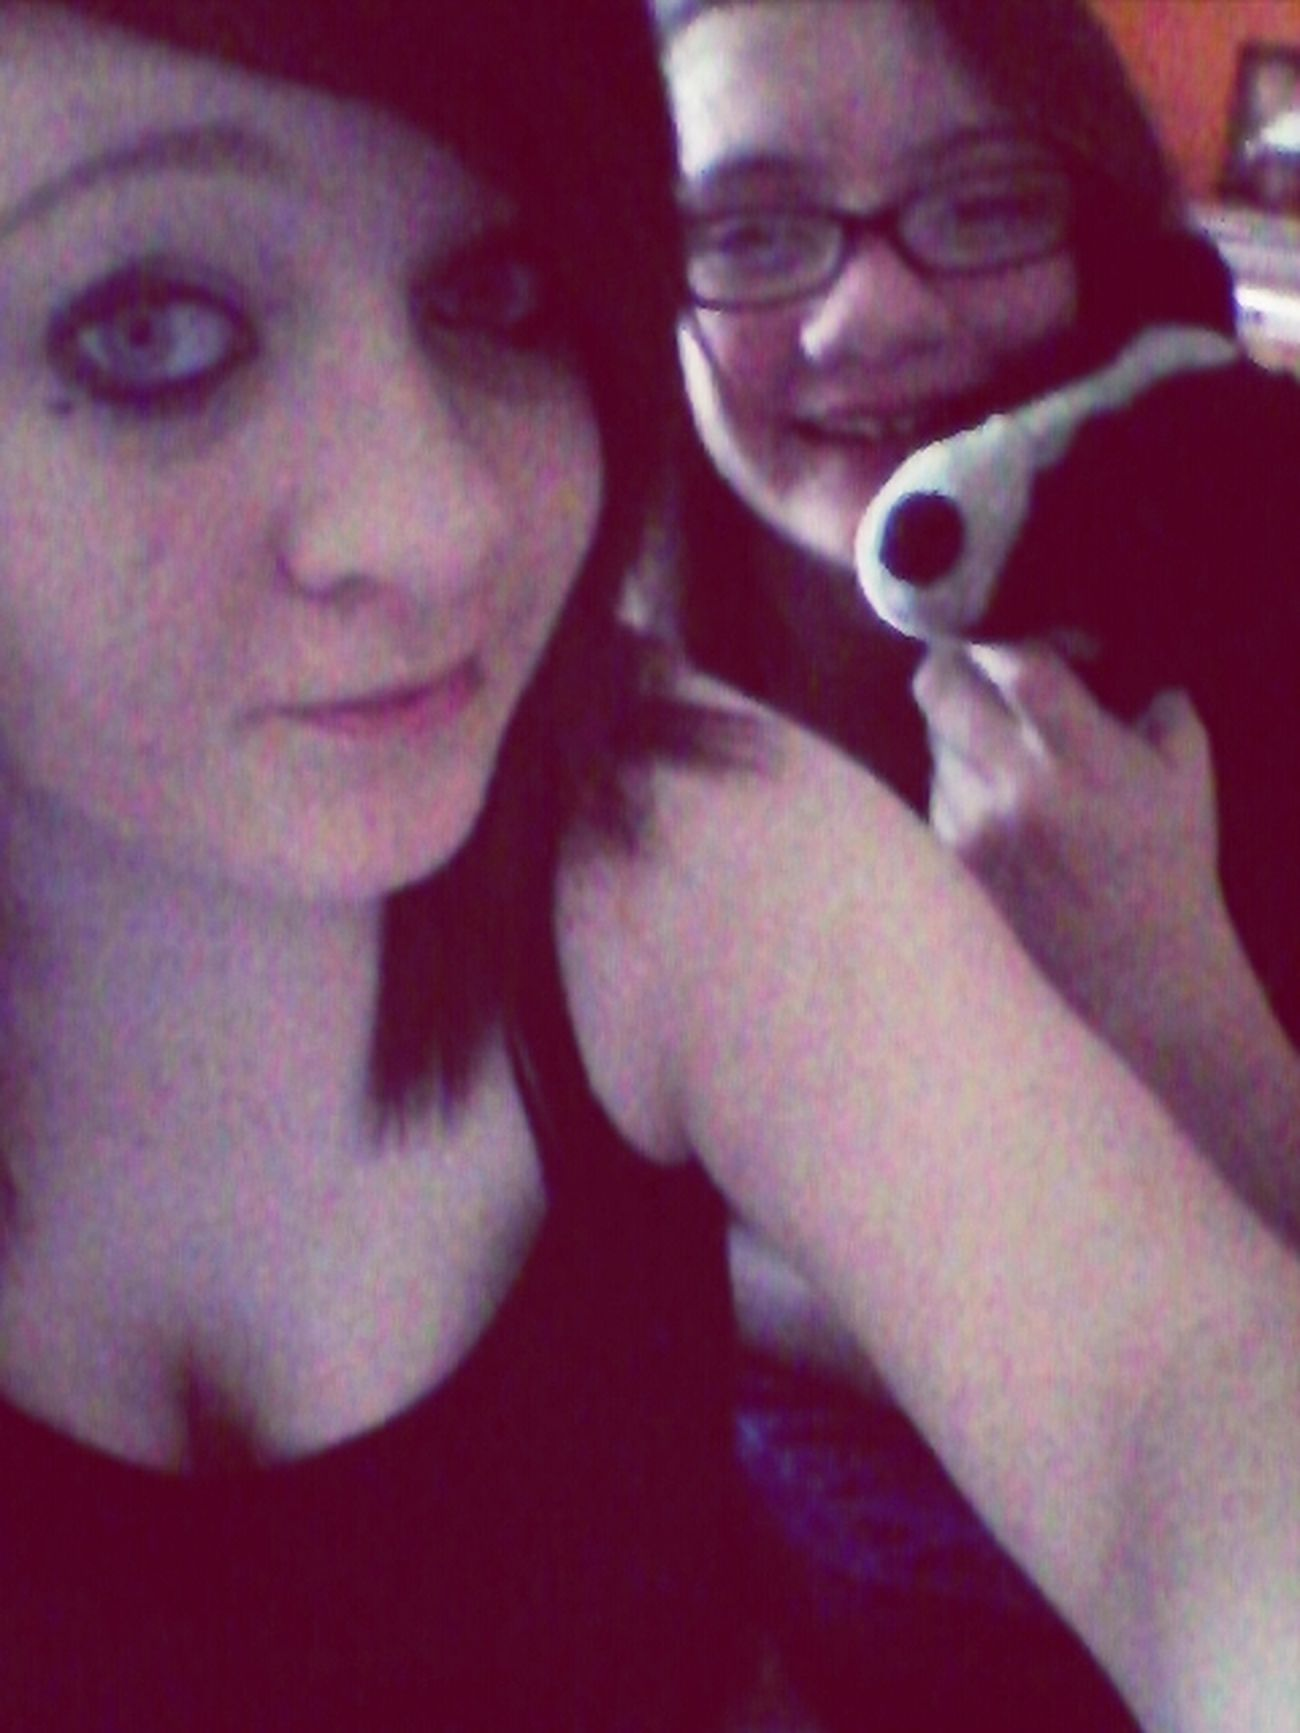 My sister and my best friend c: